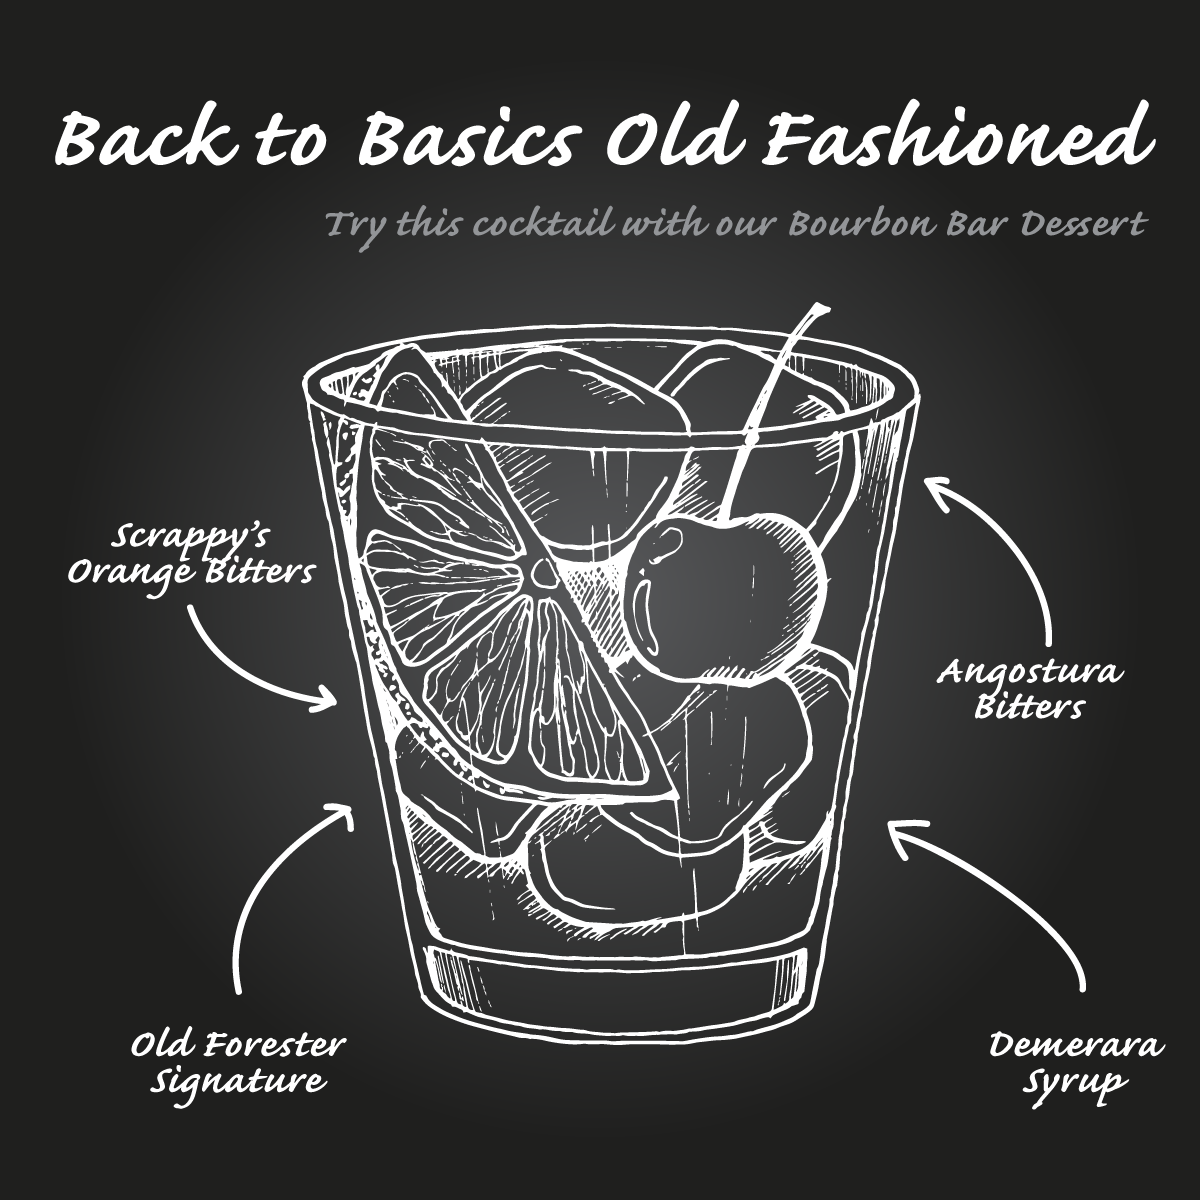 Back to Basics Old Fashioned Diagram